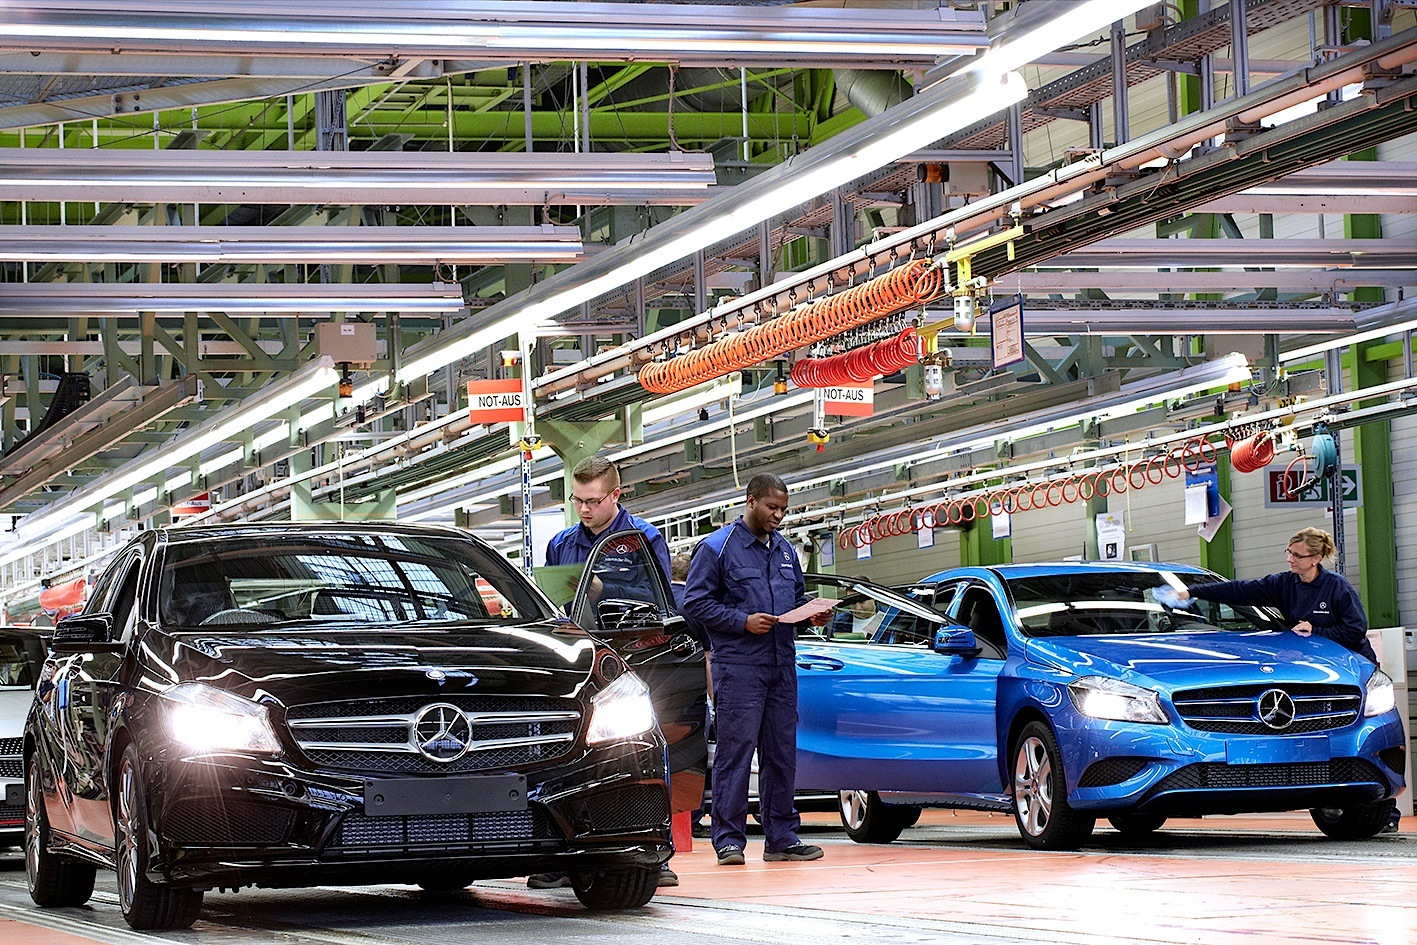 mercedes-benz breaks all-time production record - autoevolution